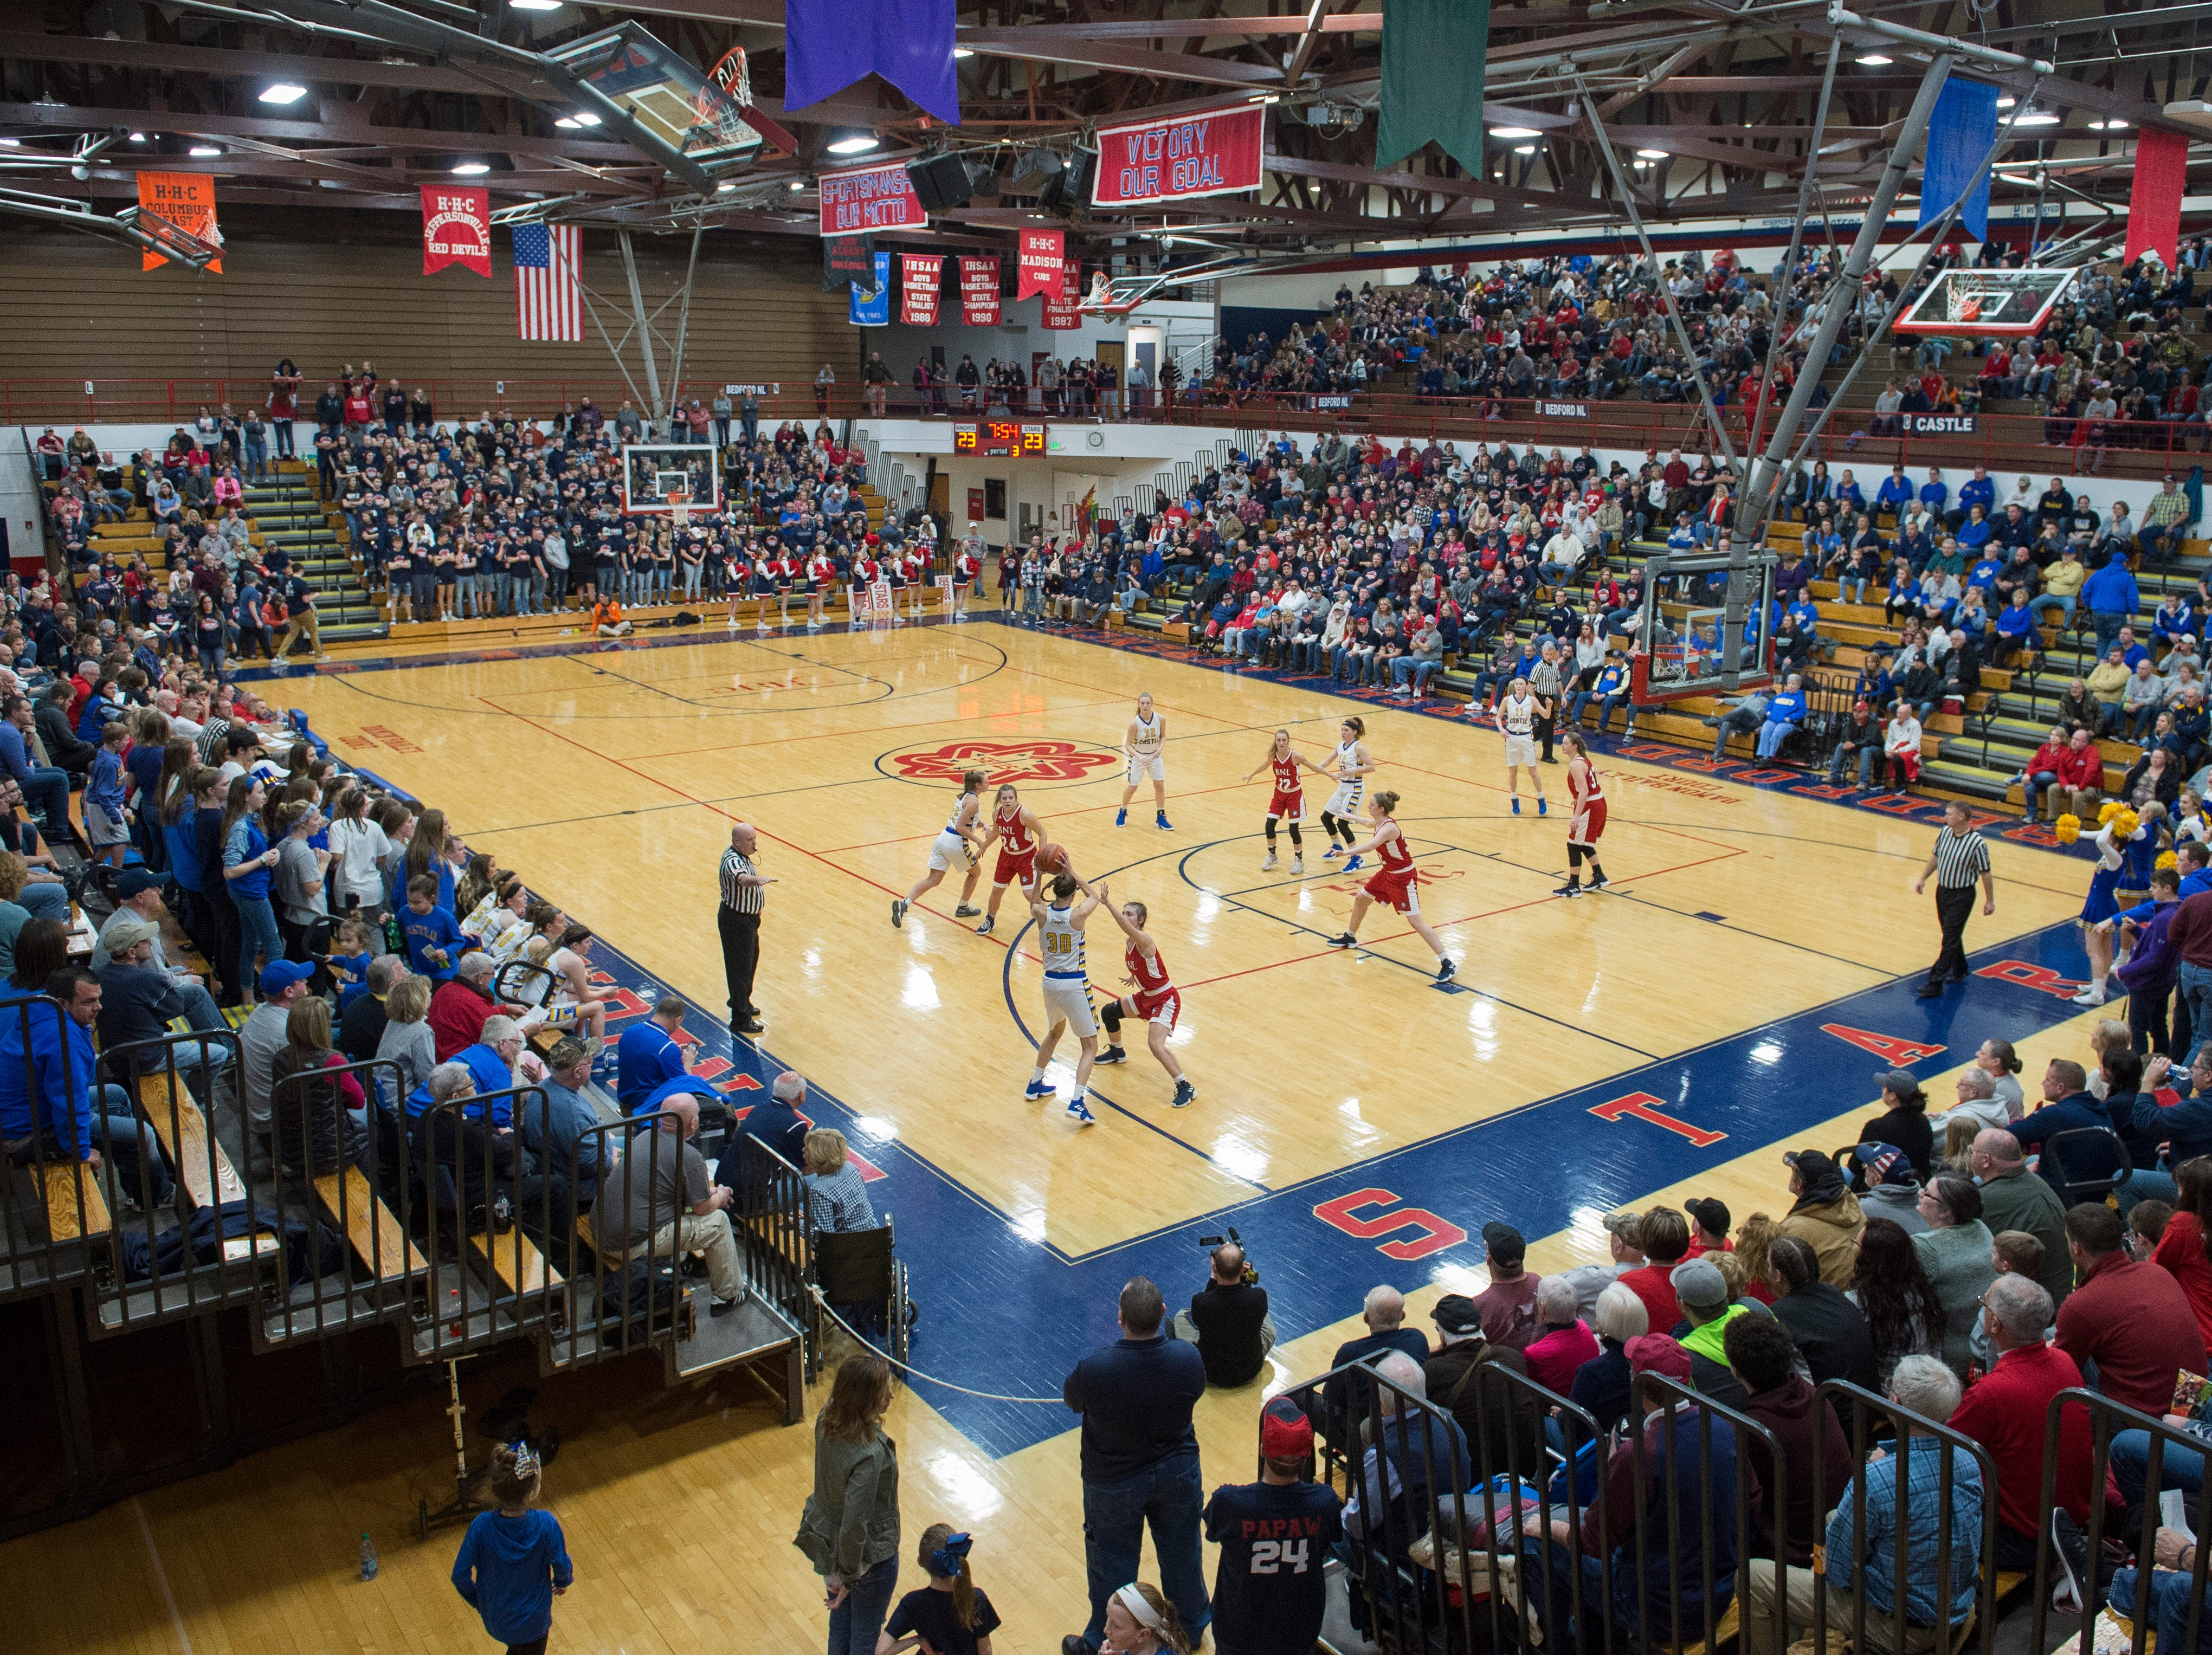 The Star Field House was packed with fans as the Castle Knights took on the Bedford North Lawrence Lady Stars during the IHSAA Girls Basketball Class 4A Regional Championship game in Bedford, Ind. Saturday, Feb. 9, 2019.